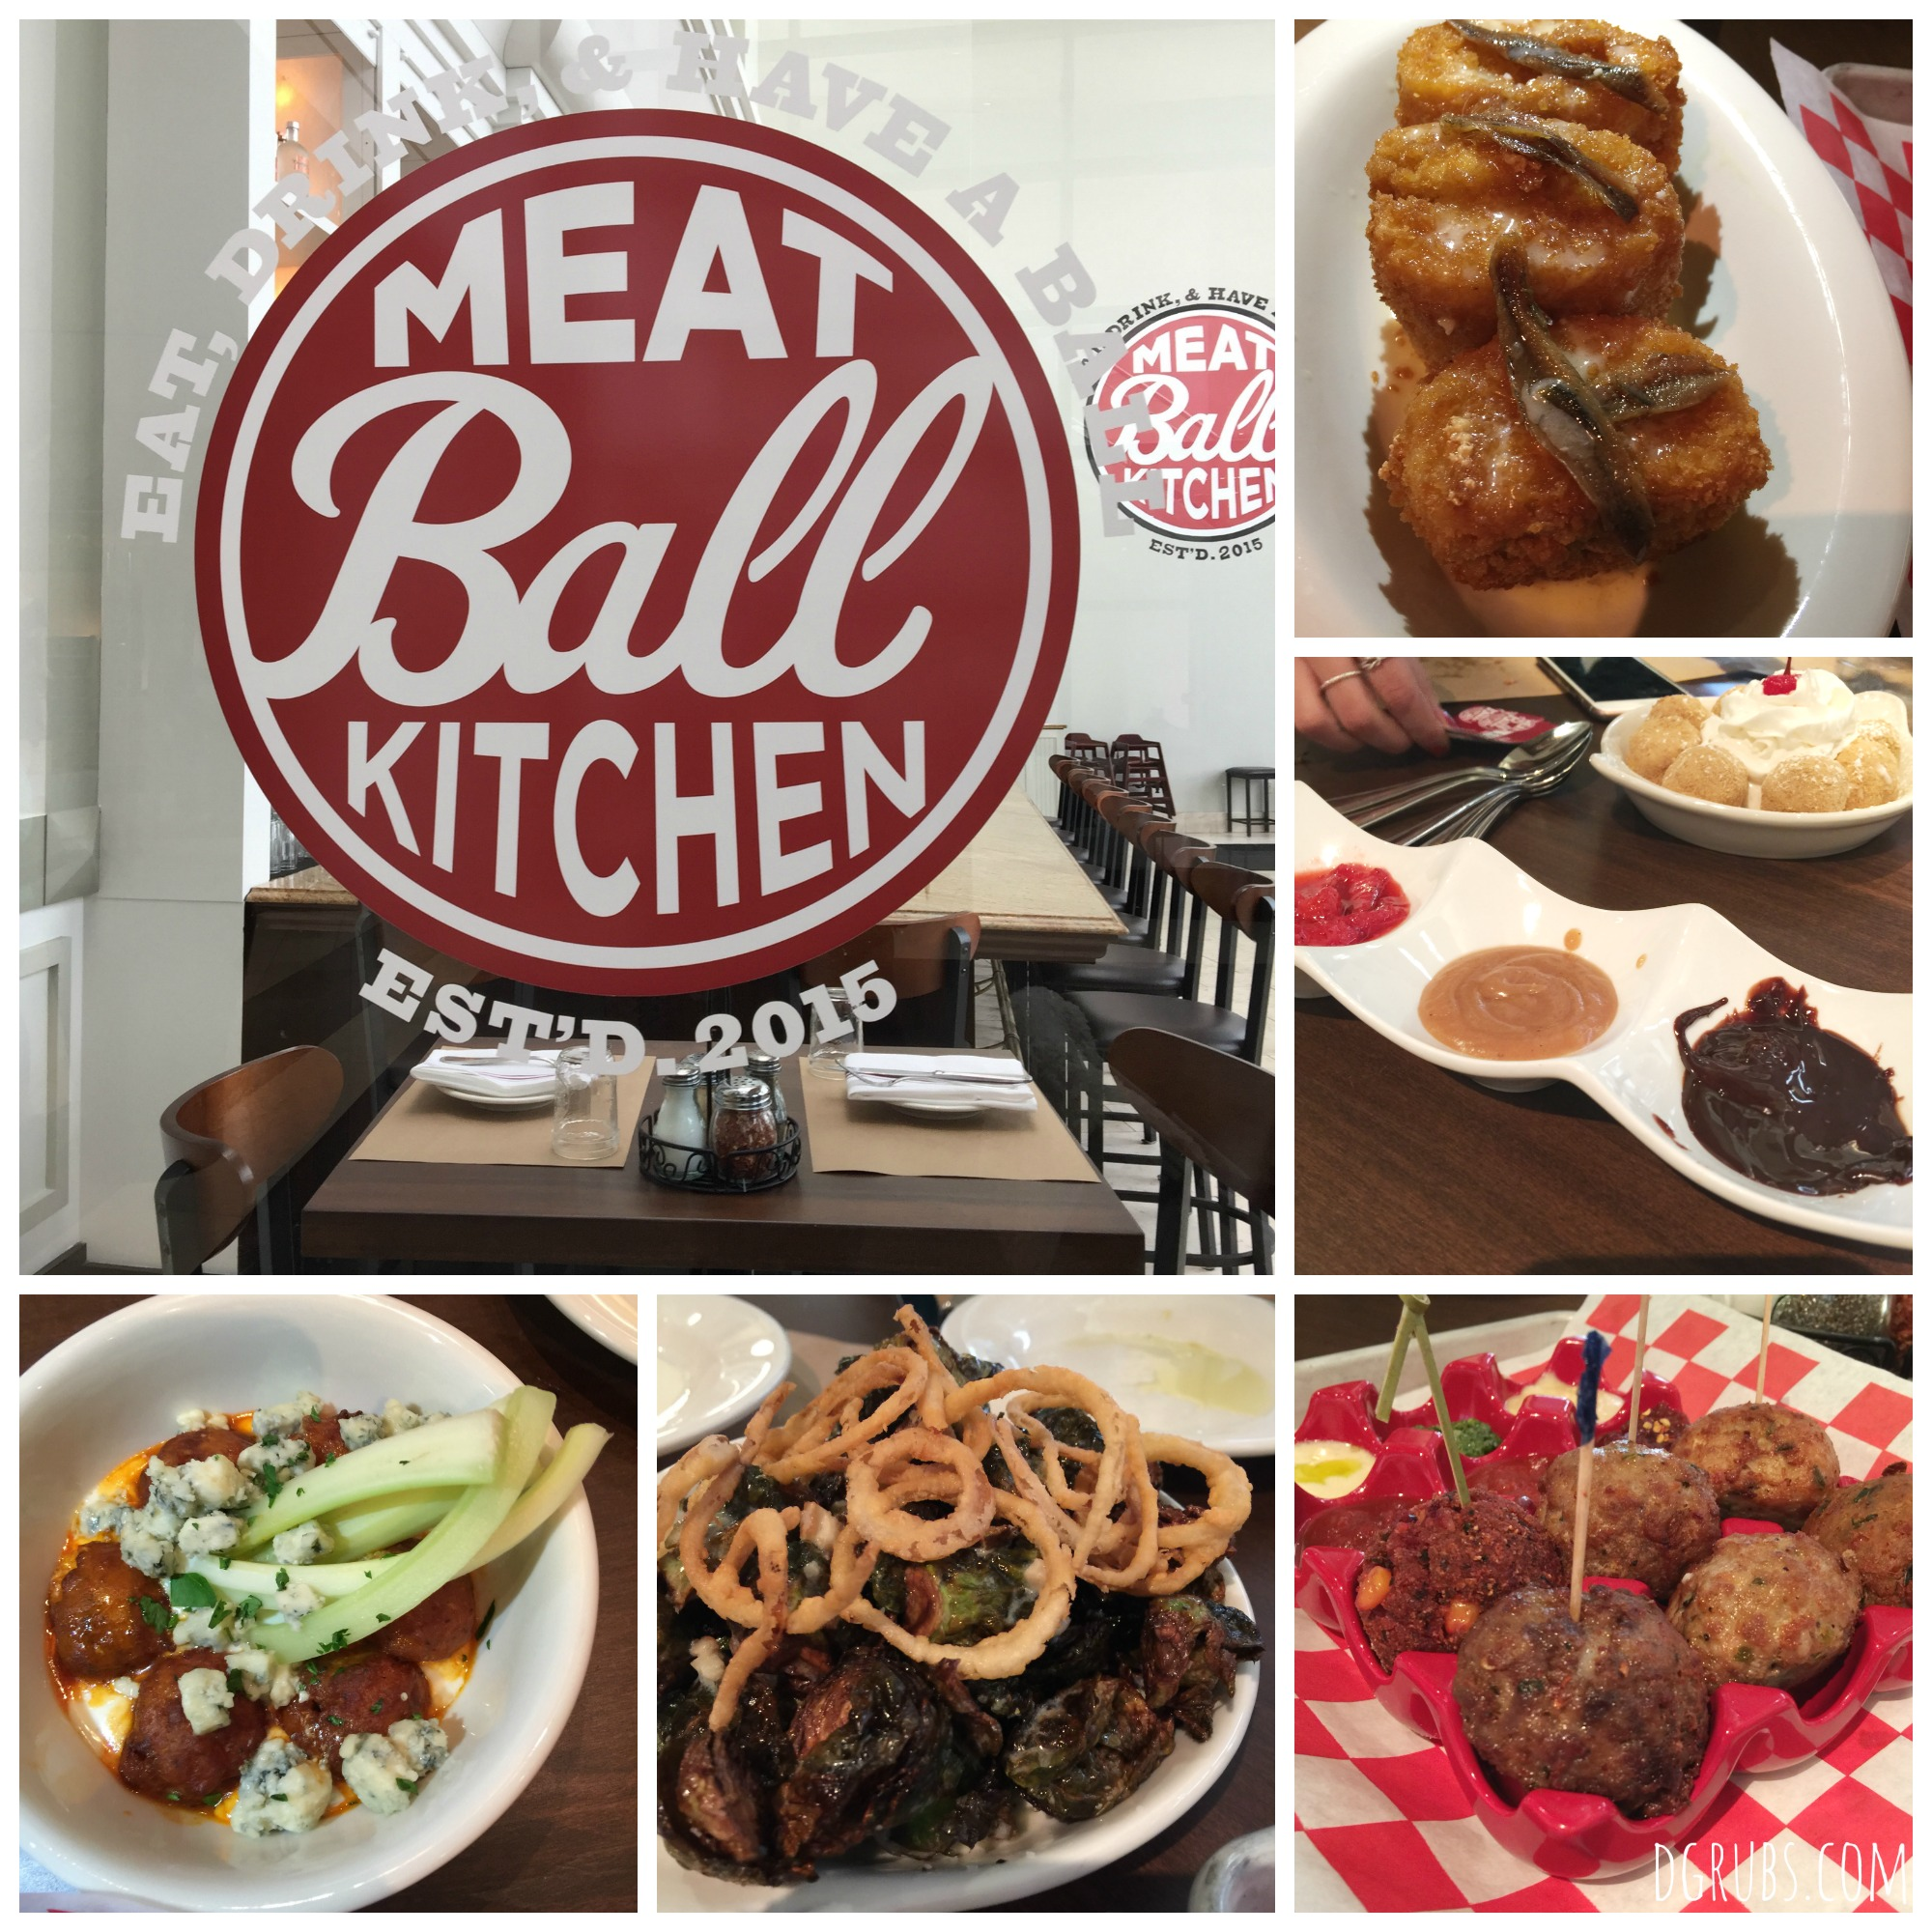 the casual eatery serves italian comfort food with something on the menu for everyone even vegetarians and vegans - Meatball Kitchen